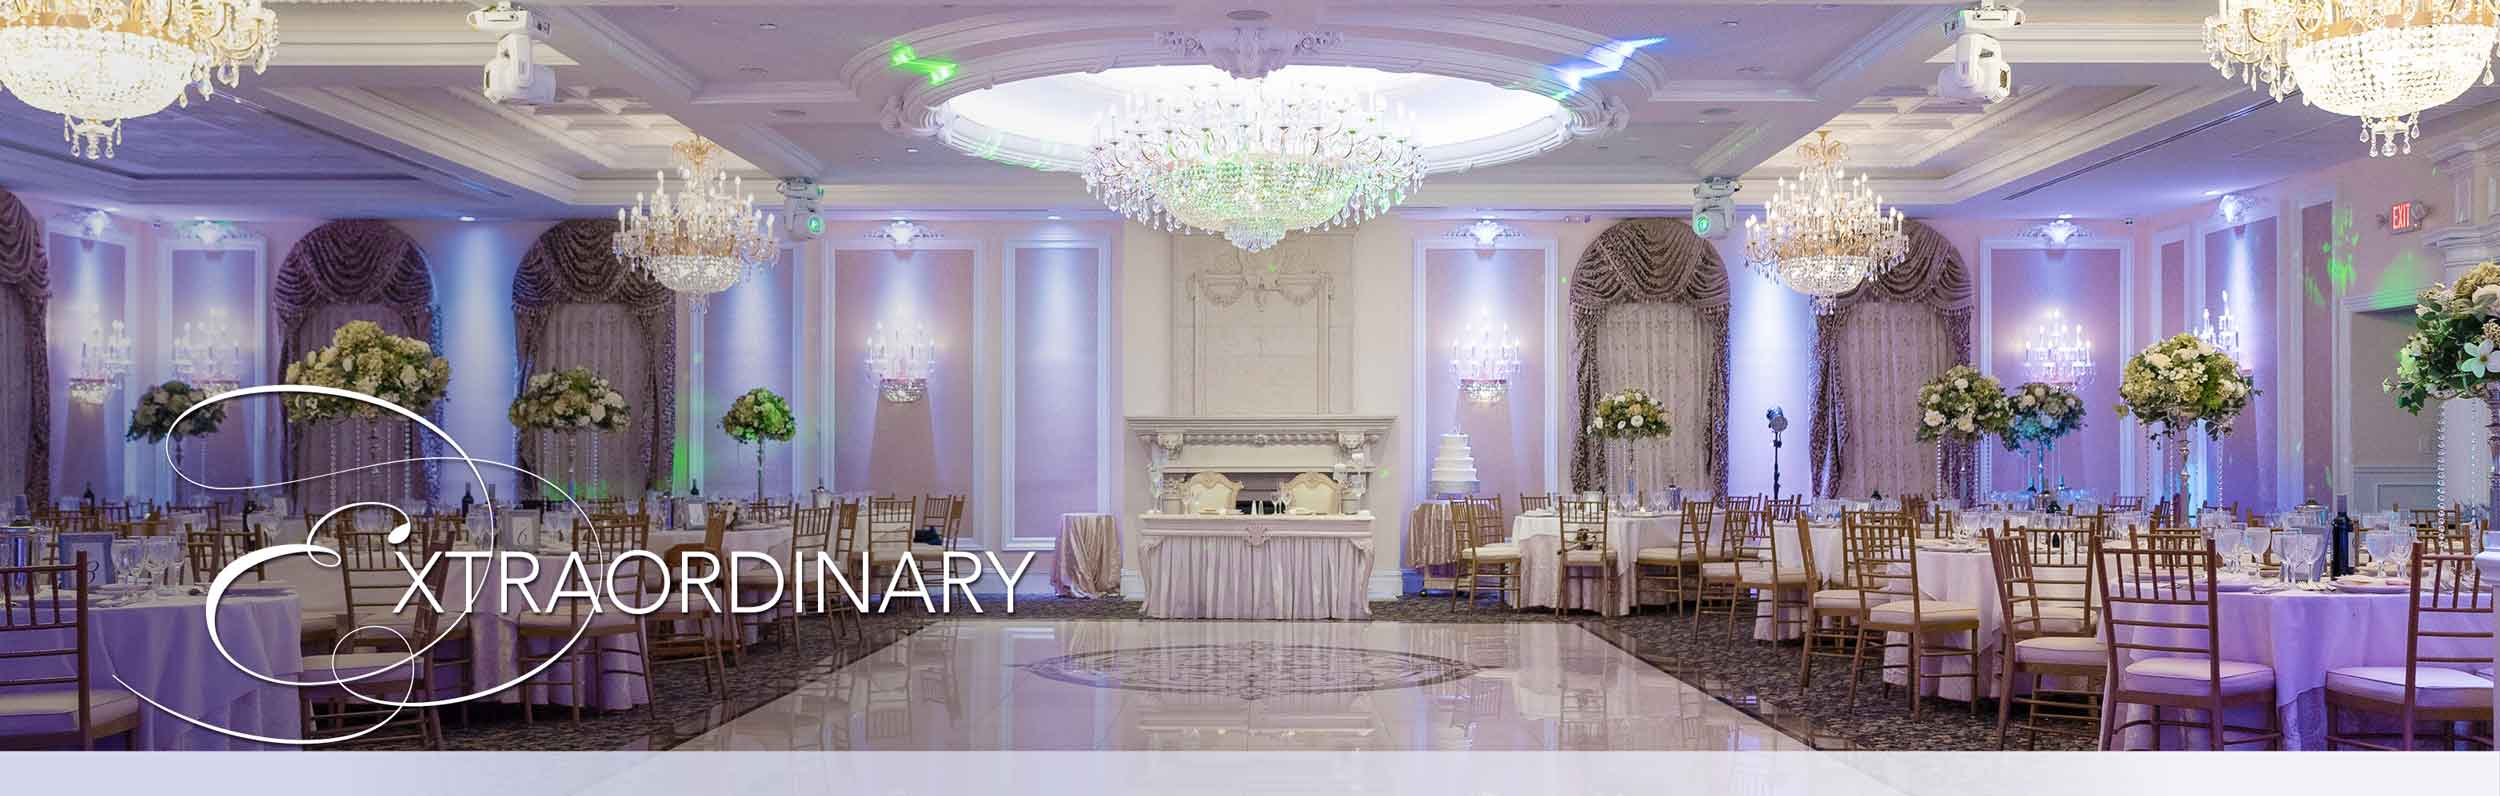 Extraordinary Stirling New Jersey Wedding Venue